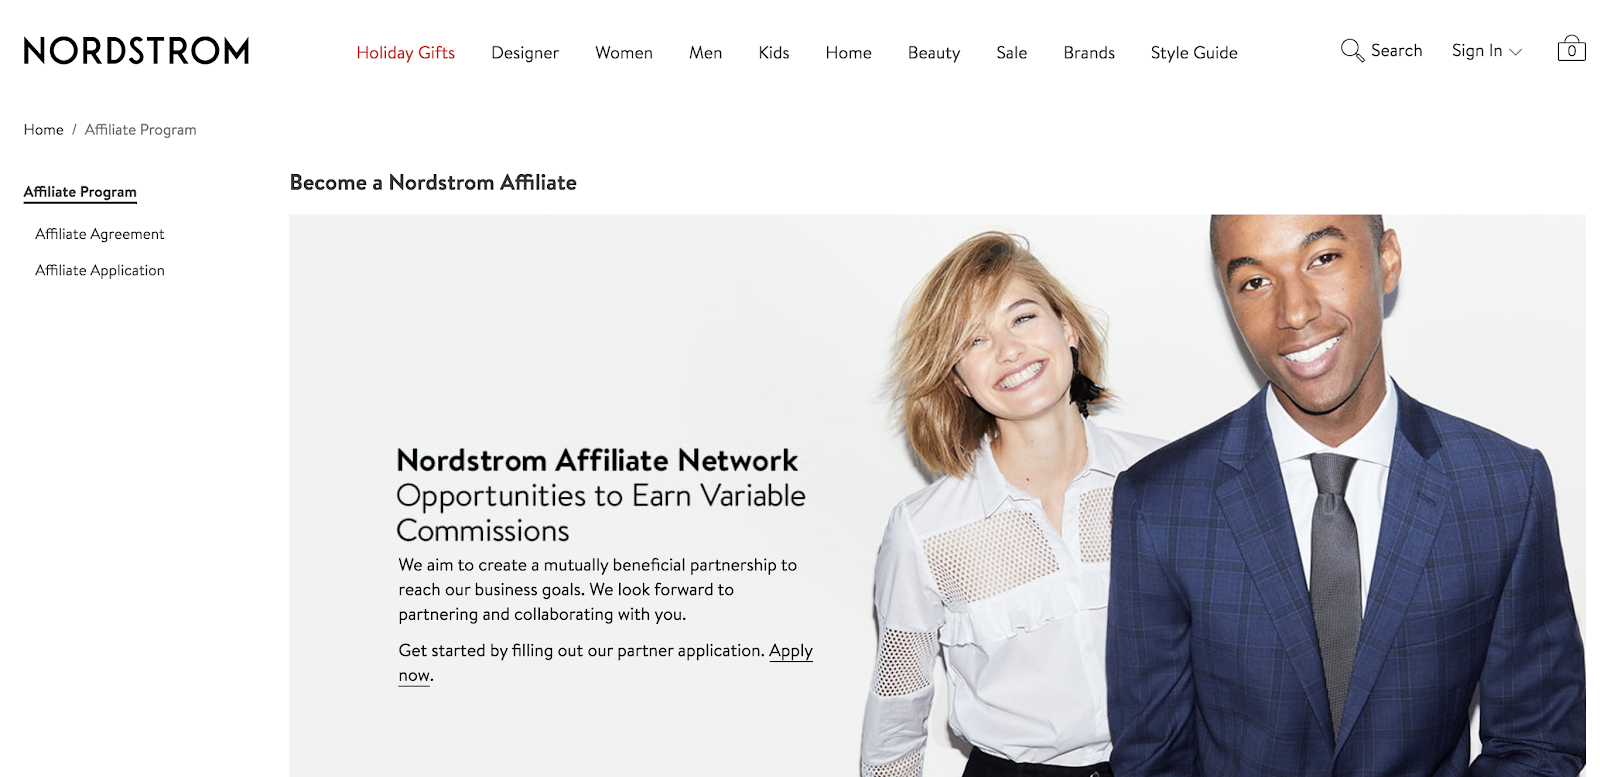 Nordstrom Affiliate Network Explainer Image